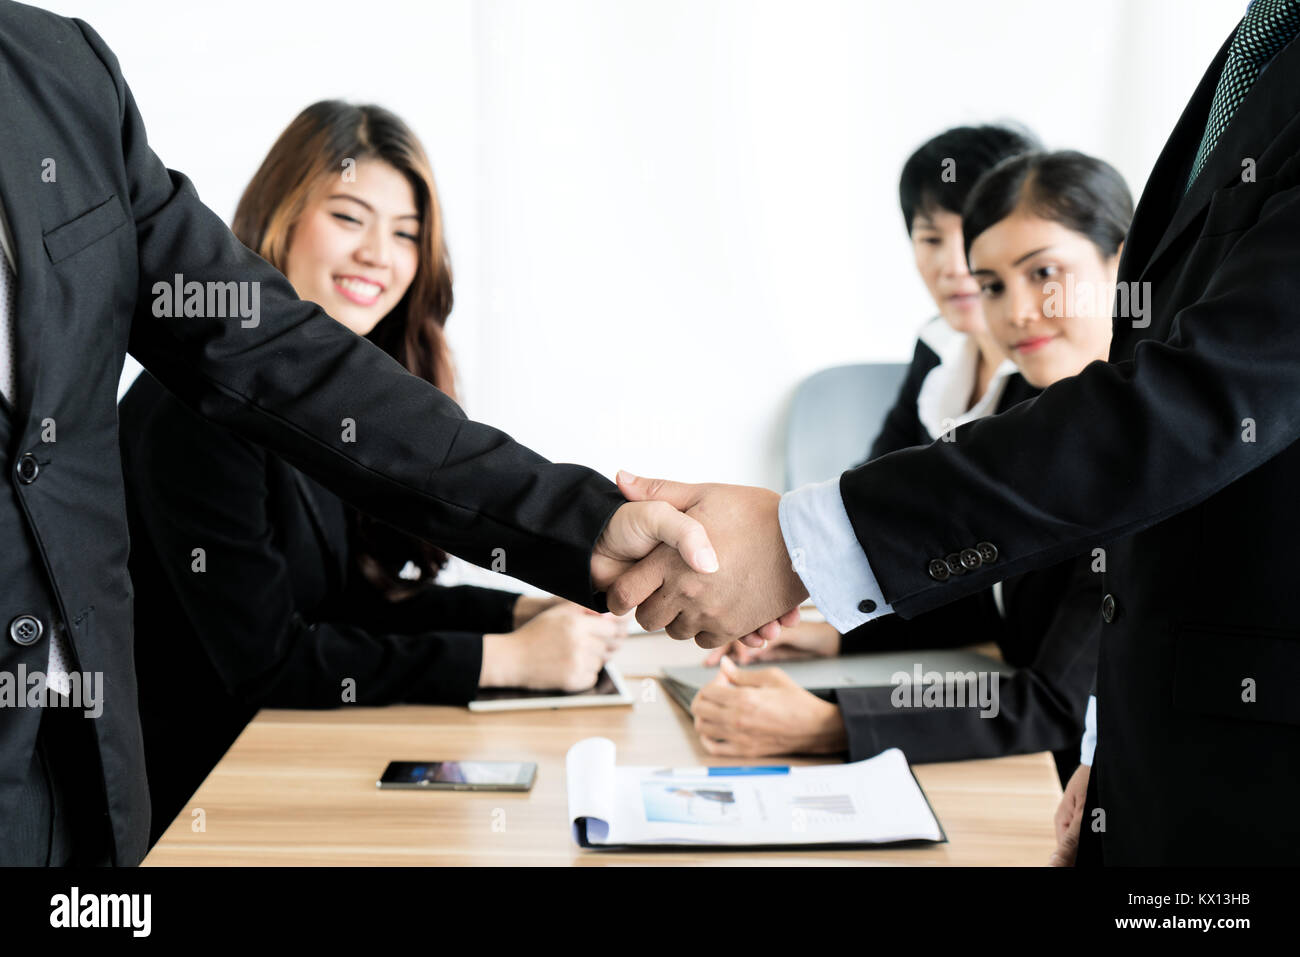 Asian businessman shaking hands in conference room. Business people shaking hands concept accord. Banque D'Images